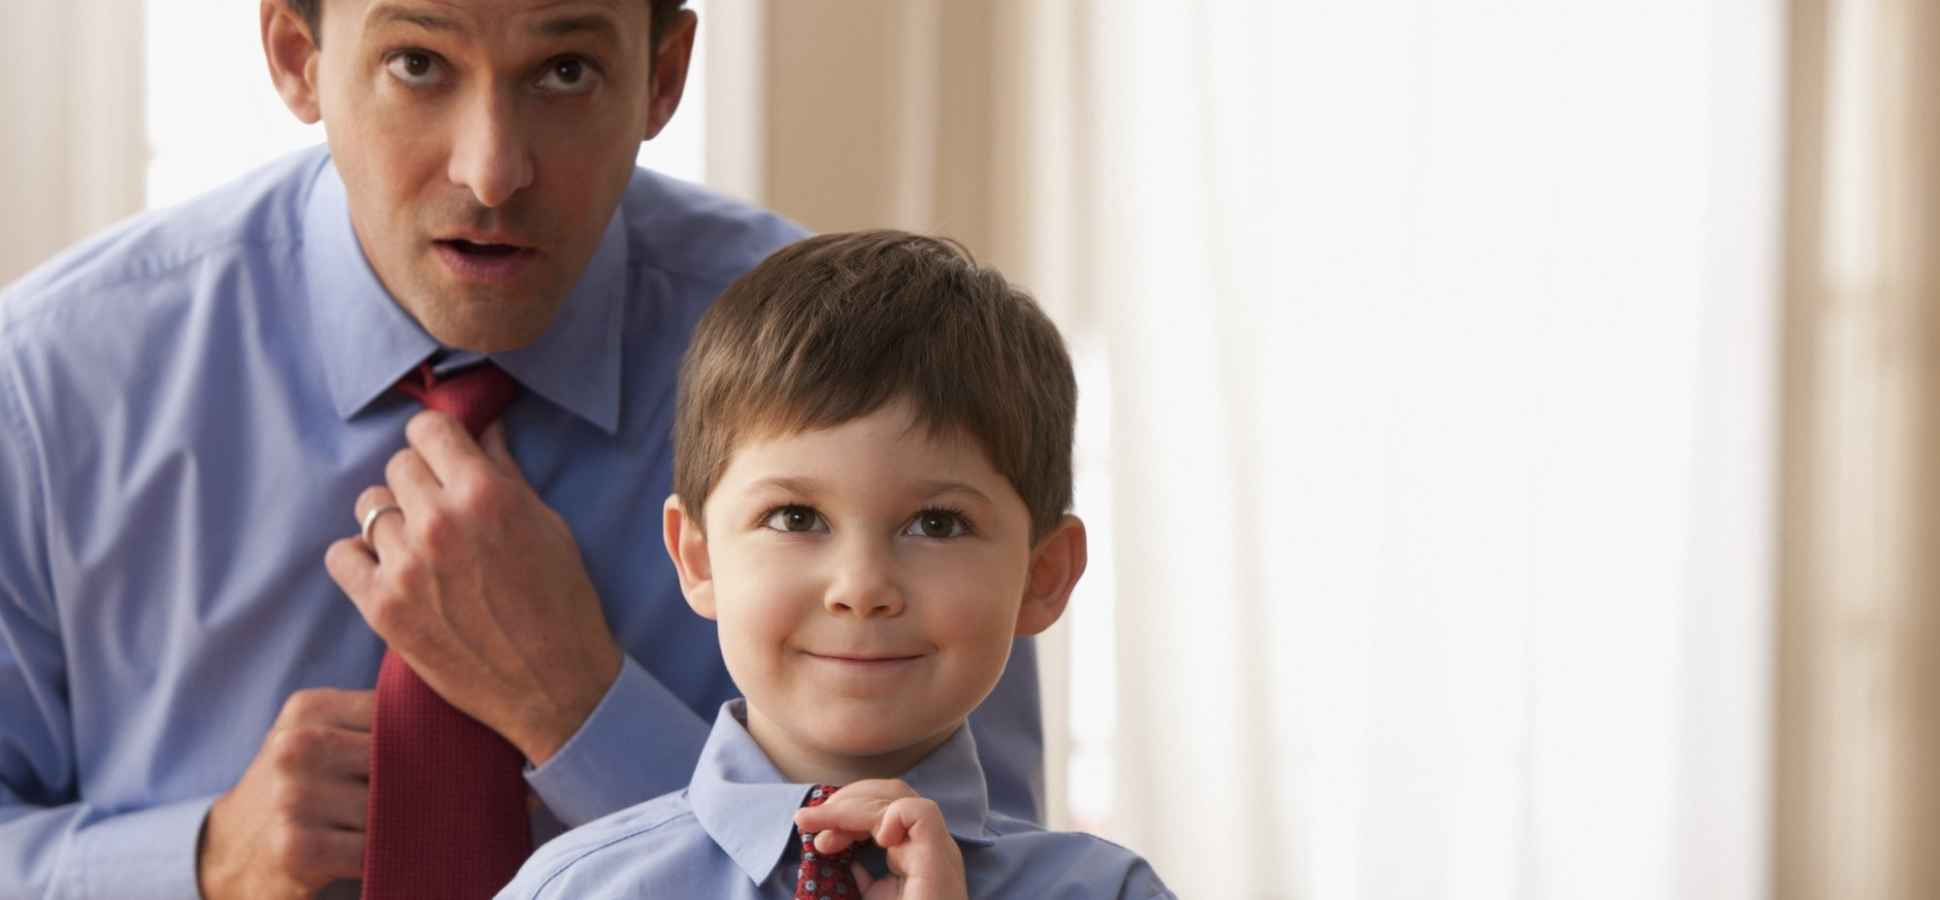 Want Your Kids to Be Hard Workers? Don't Be Gone at Work All the Time, Science Suggests